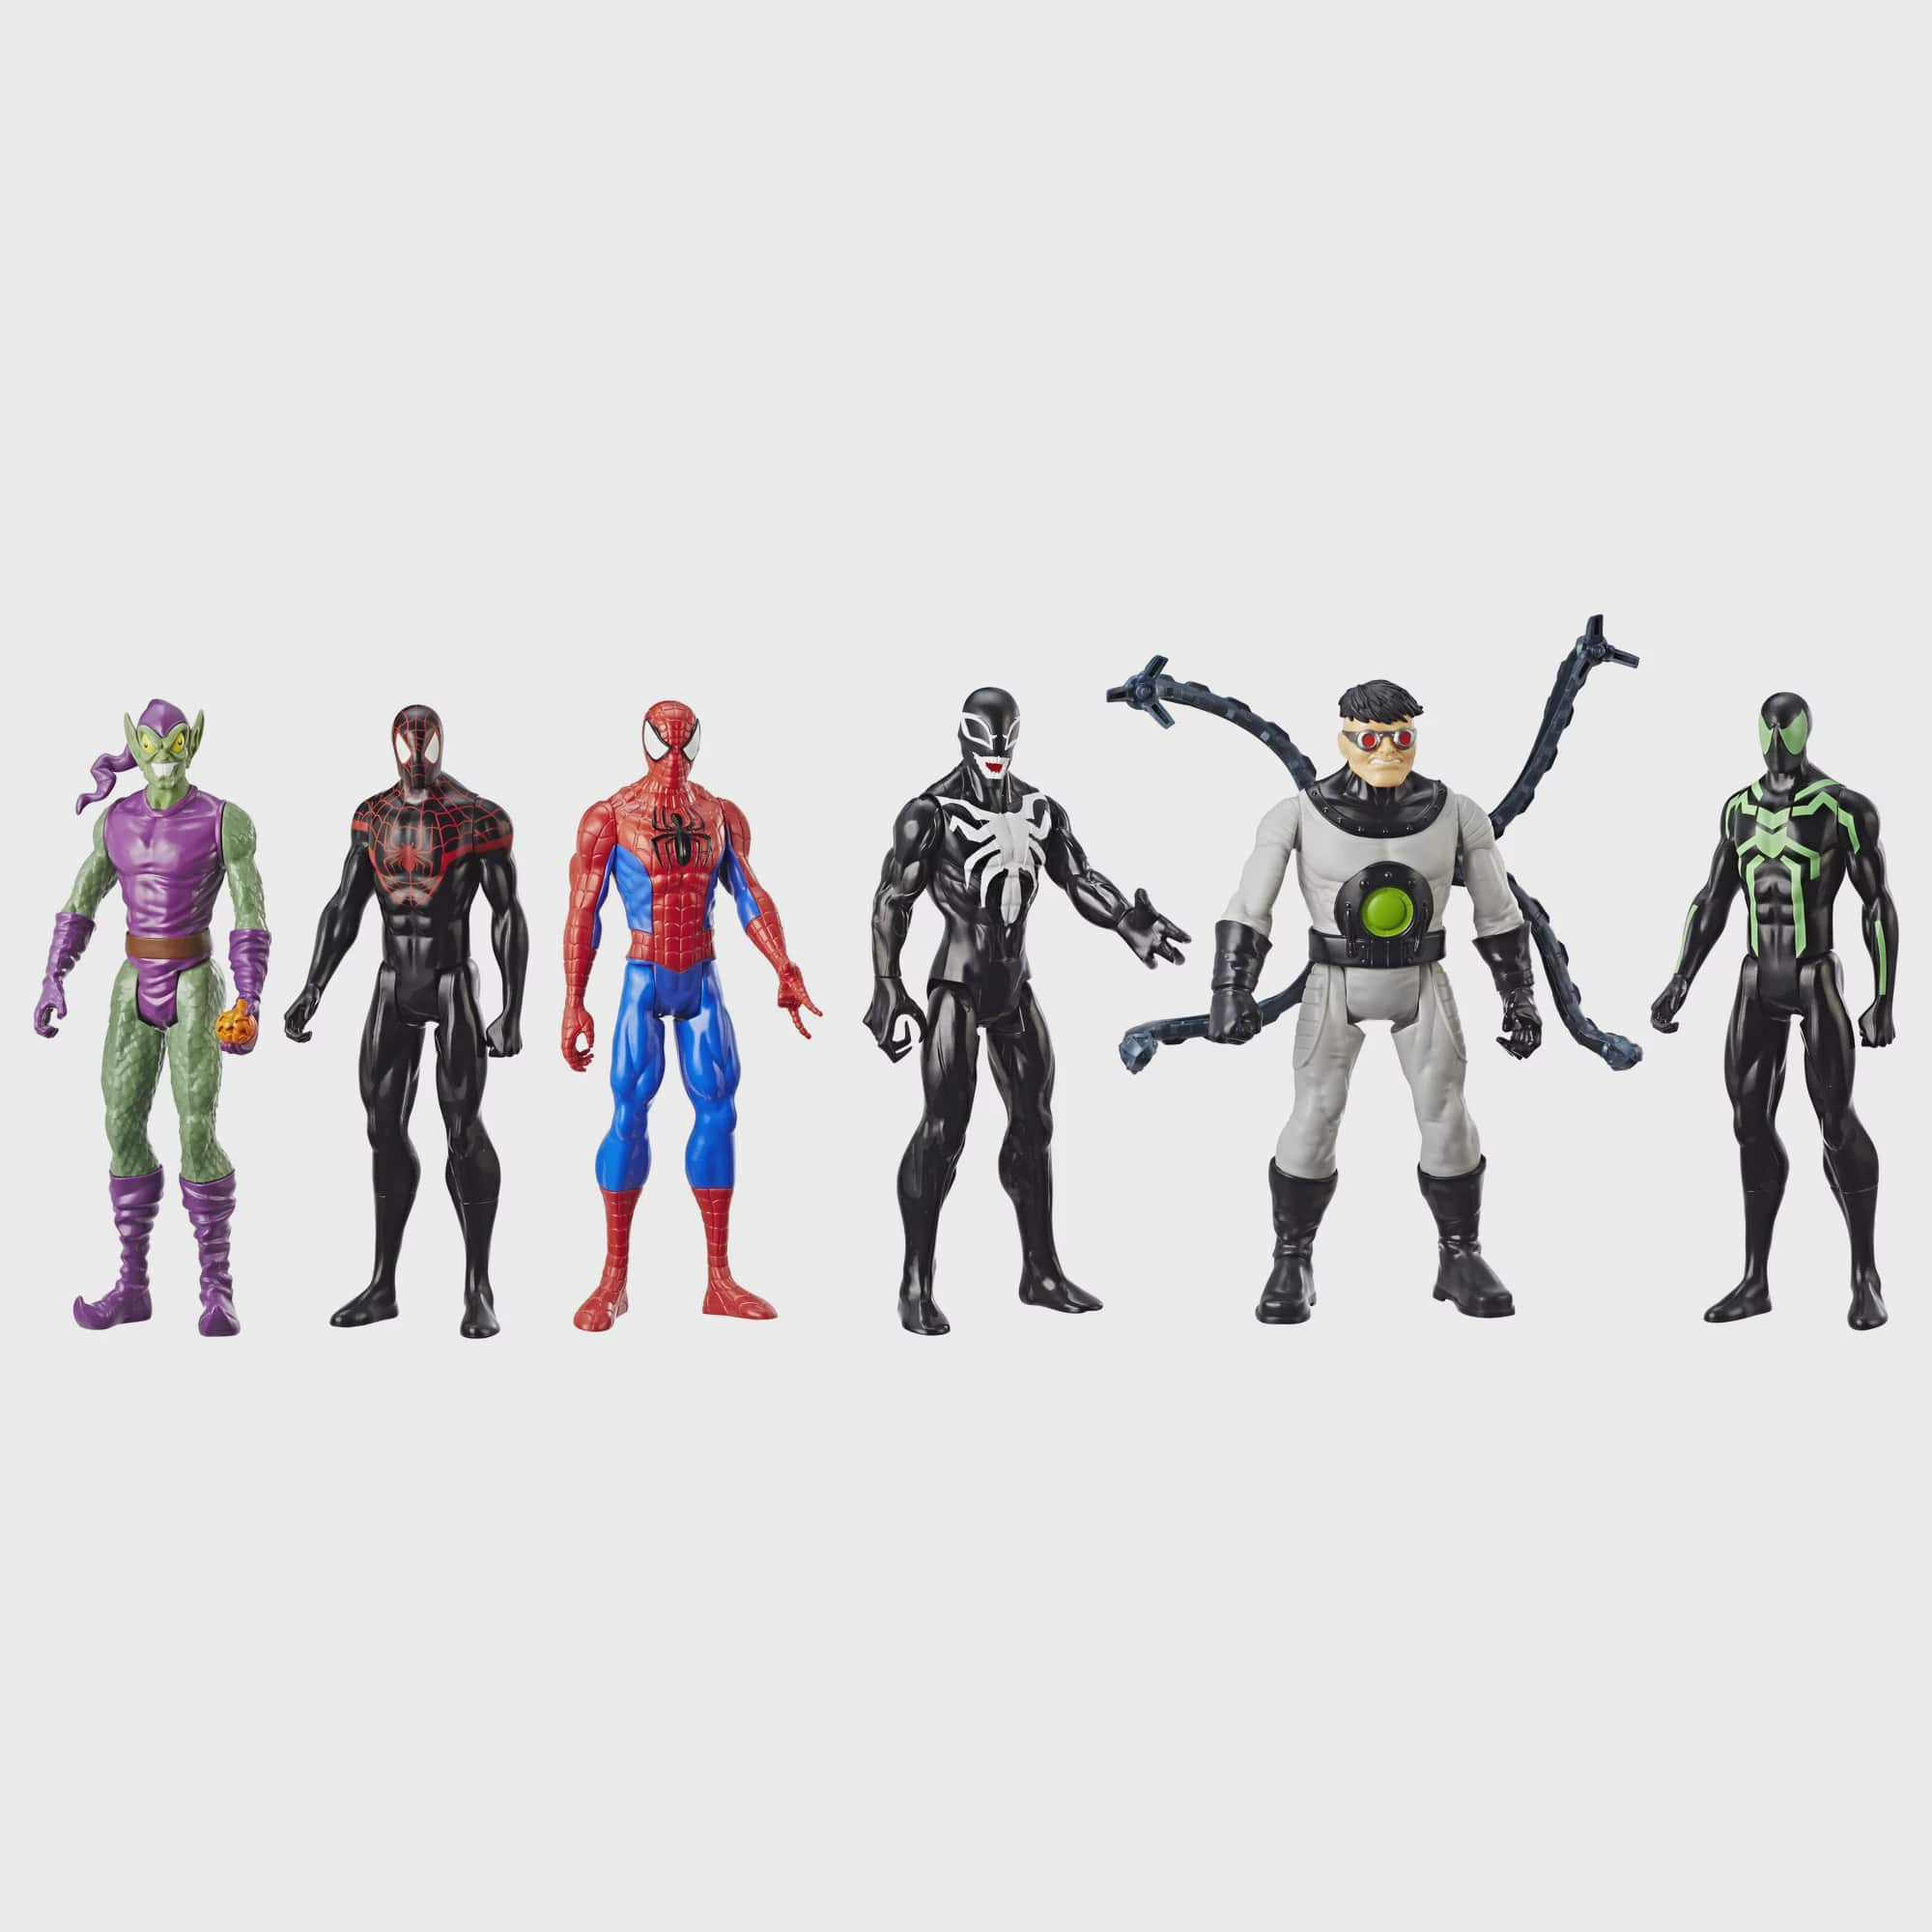 Spider-Man Titan Hero Figure 6-Pack - Walmart Exclusive